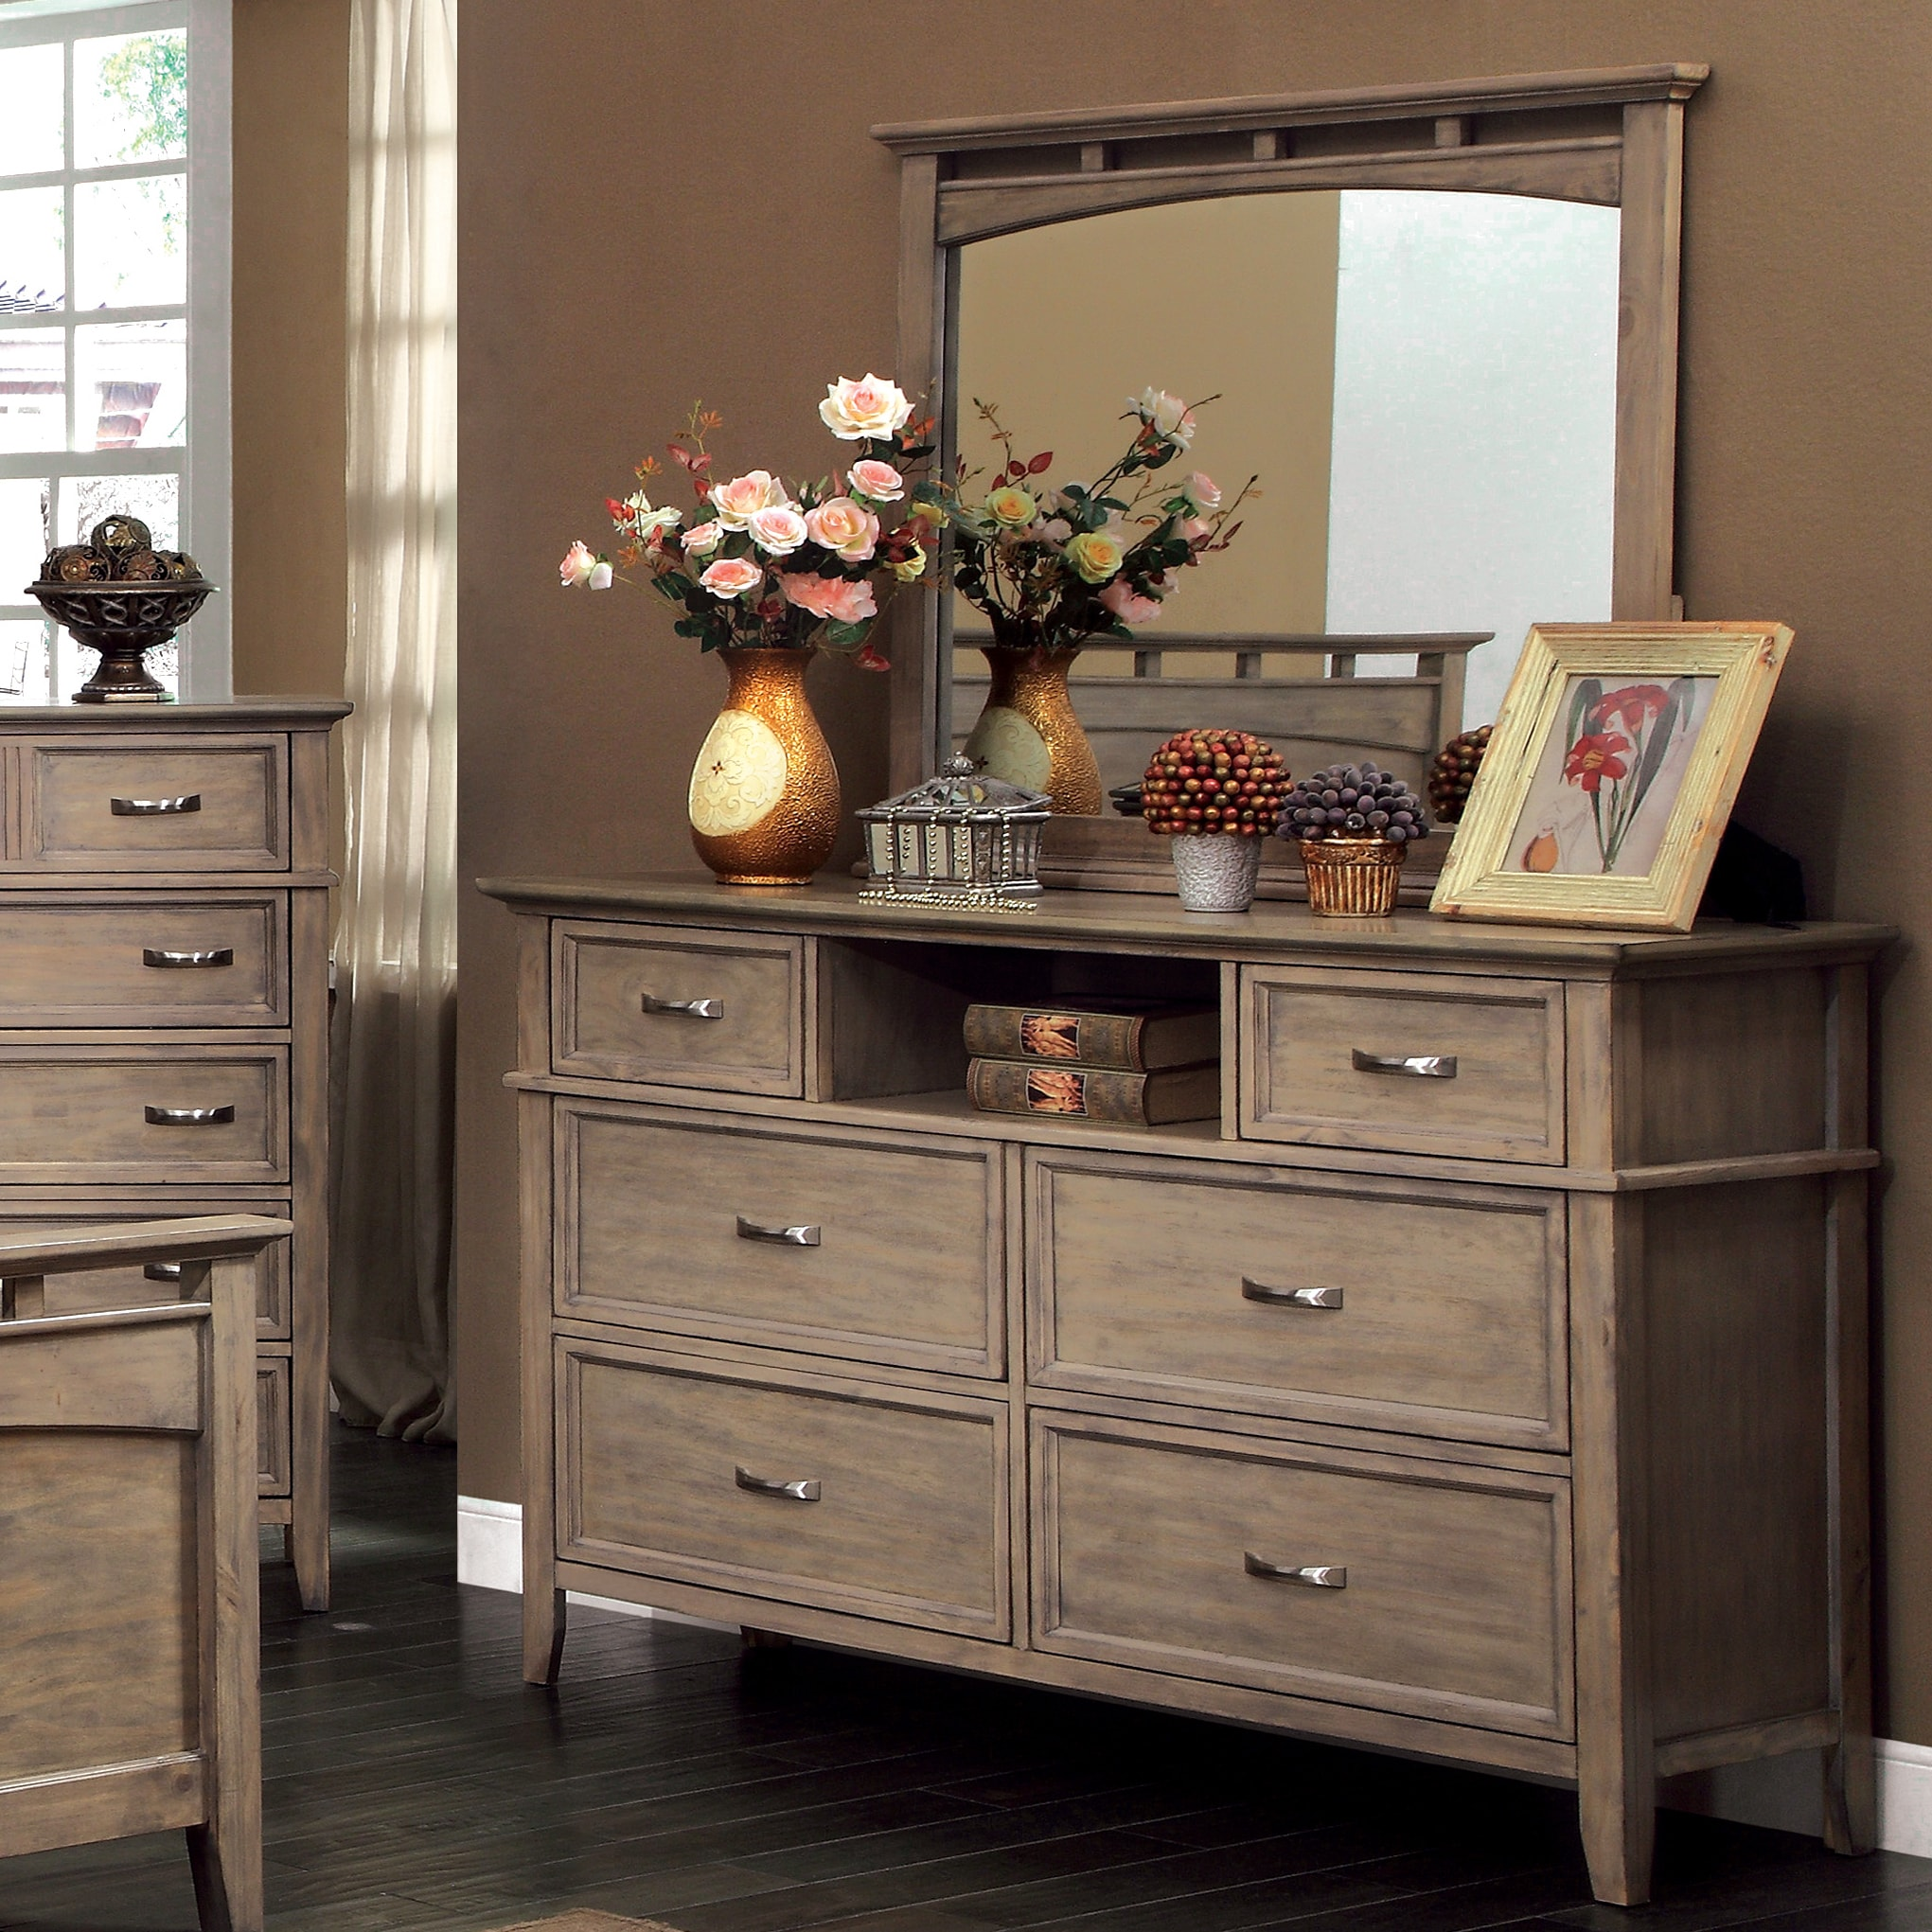 Perfect Furniture Of America Shoreline 4 Piece Weathered Oak Bed Set   Free  Shipping Today   Overstock.com   16349907